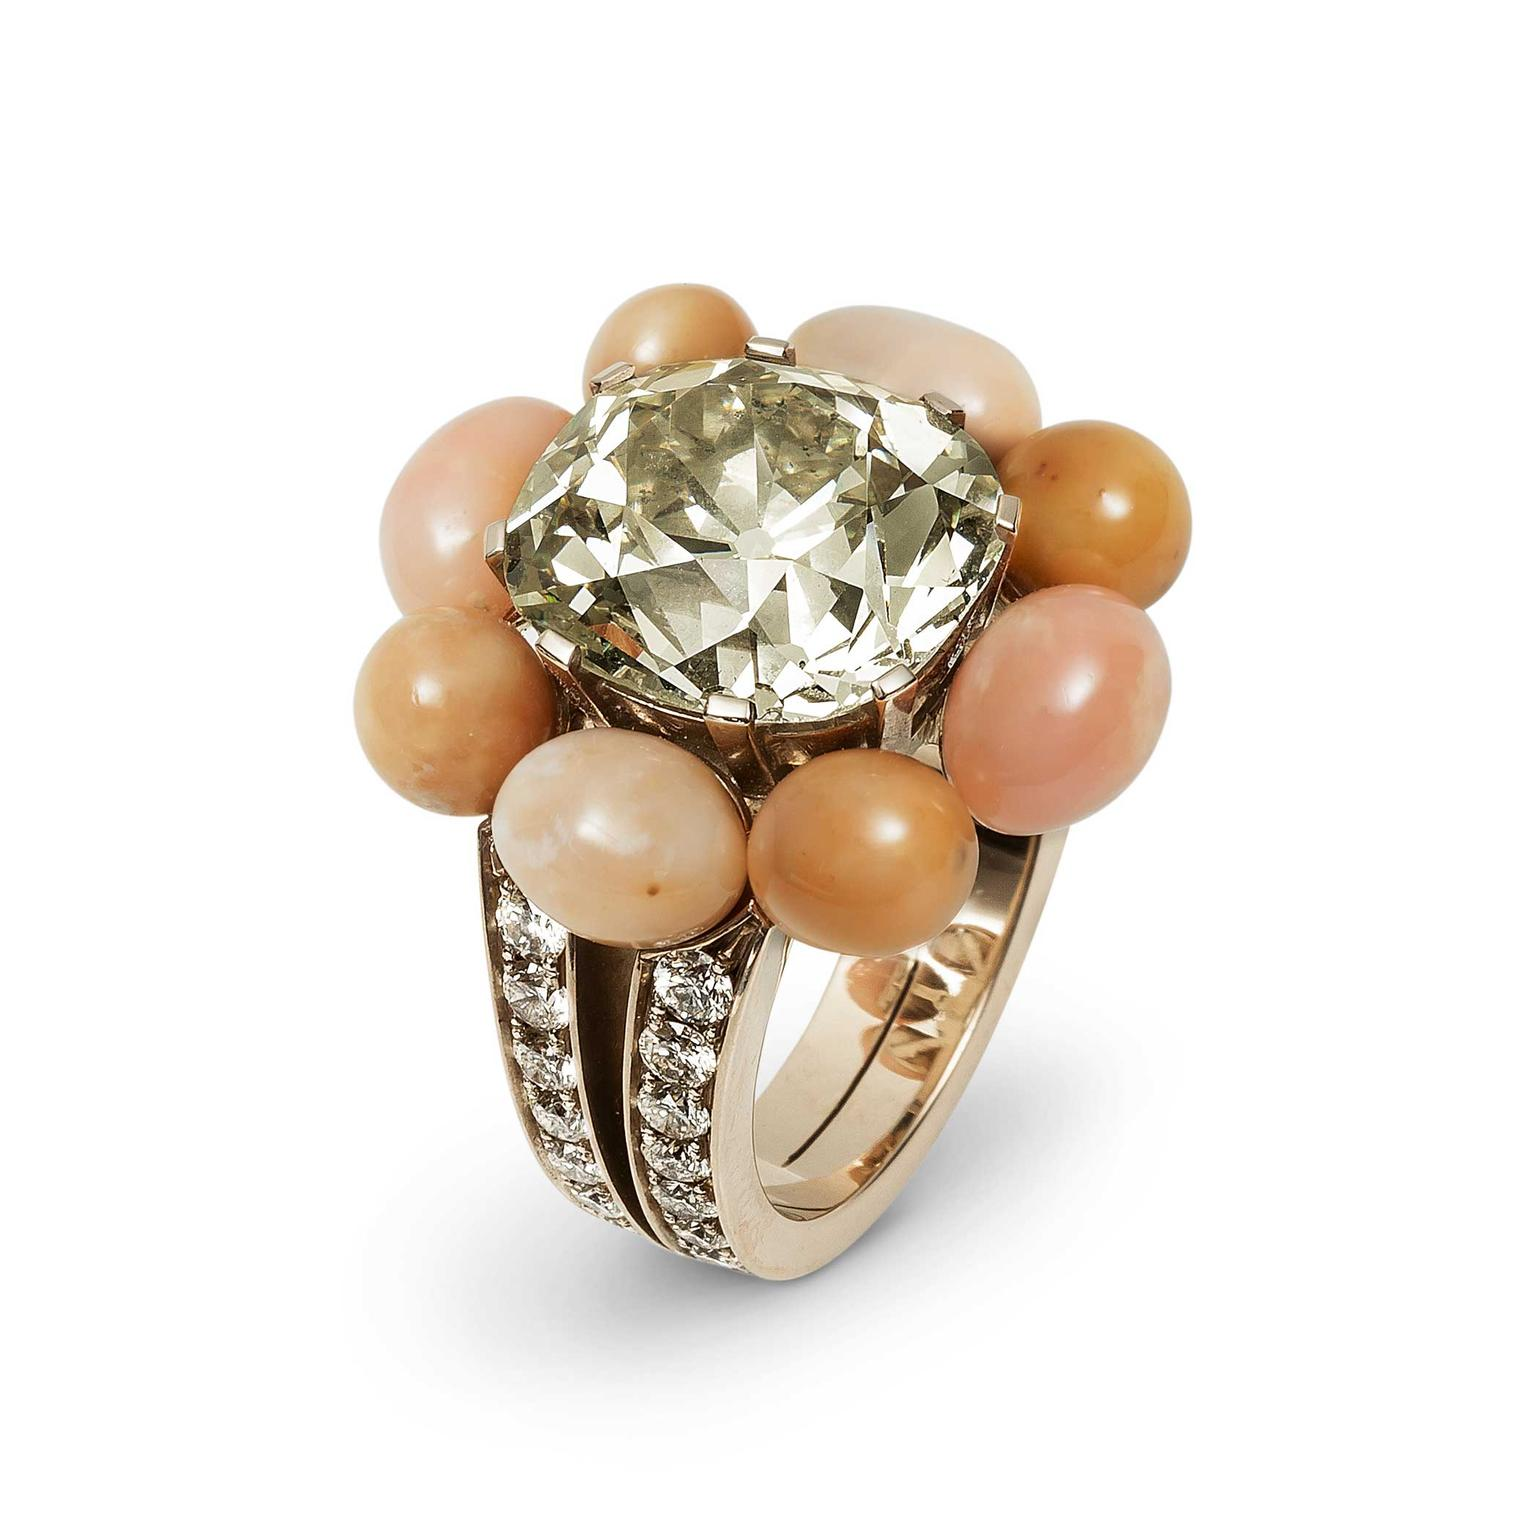 Hemmerle gold ring with diamonds and conch pearls